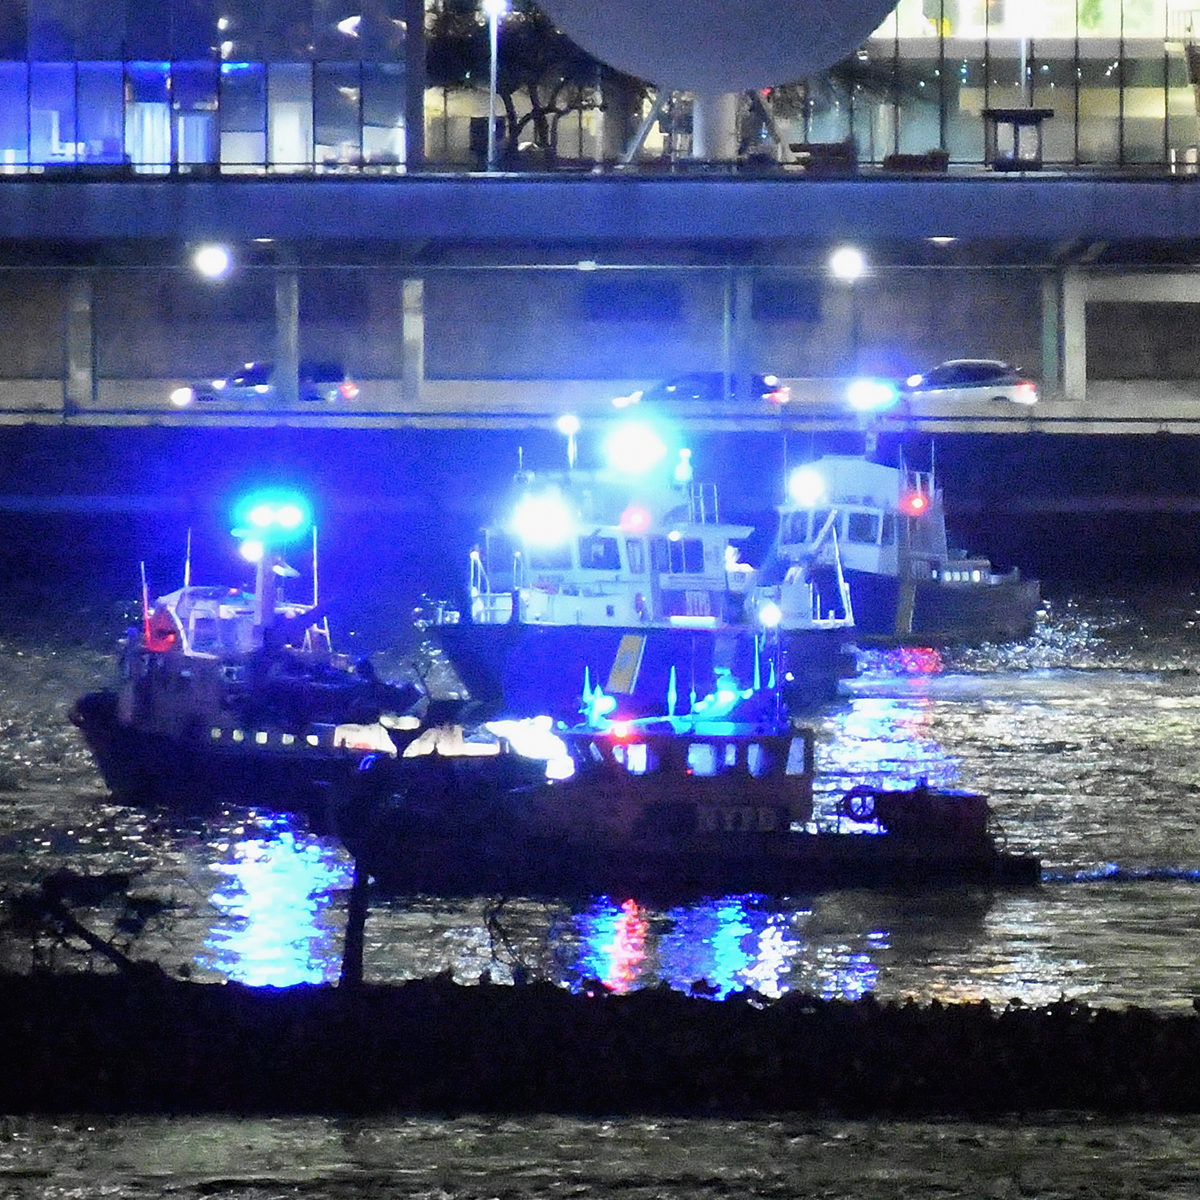 Police and firefighters respond to a helicopter crash into New York City's East River on Saturday evening that left two people dead and three others critically injured.